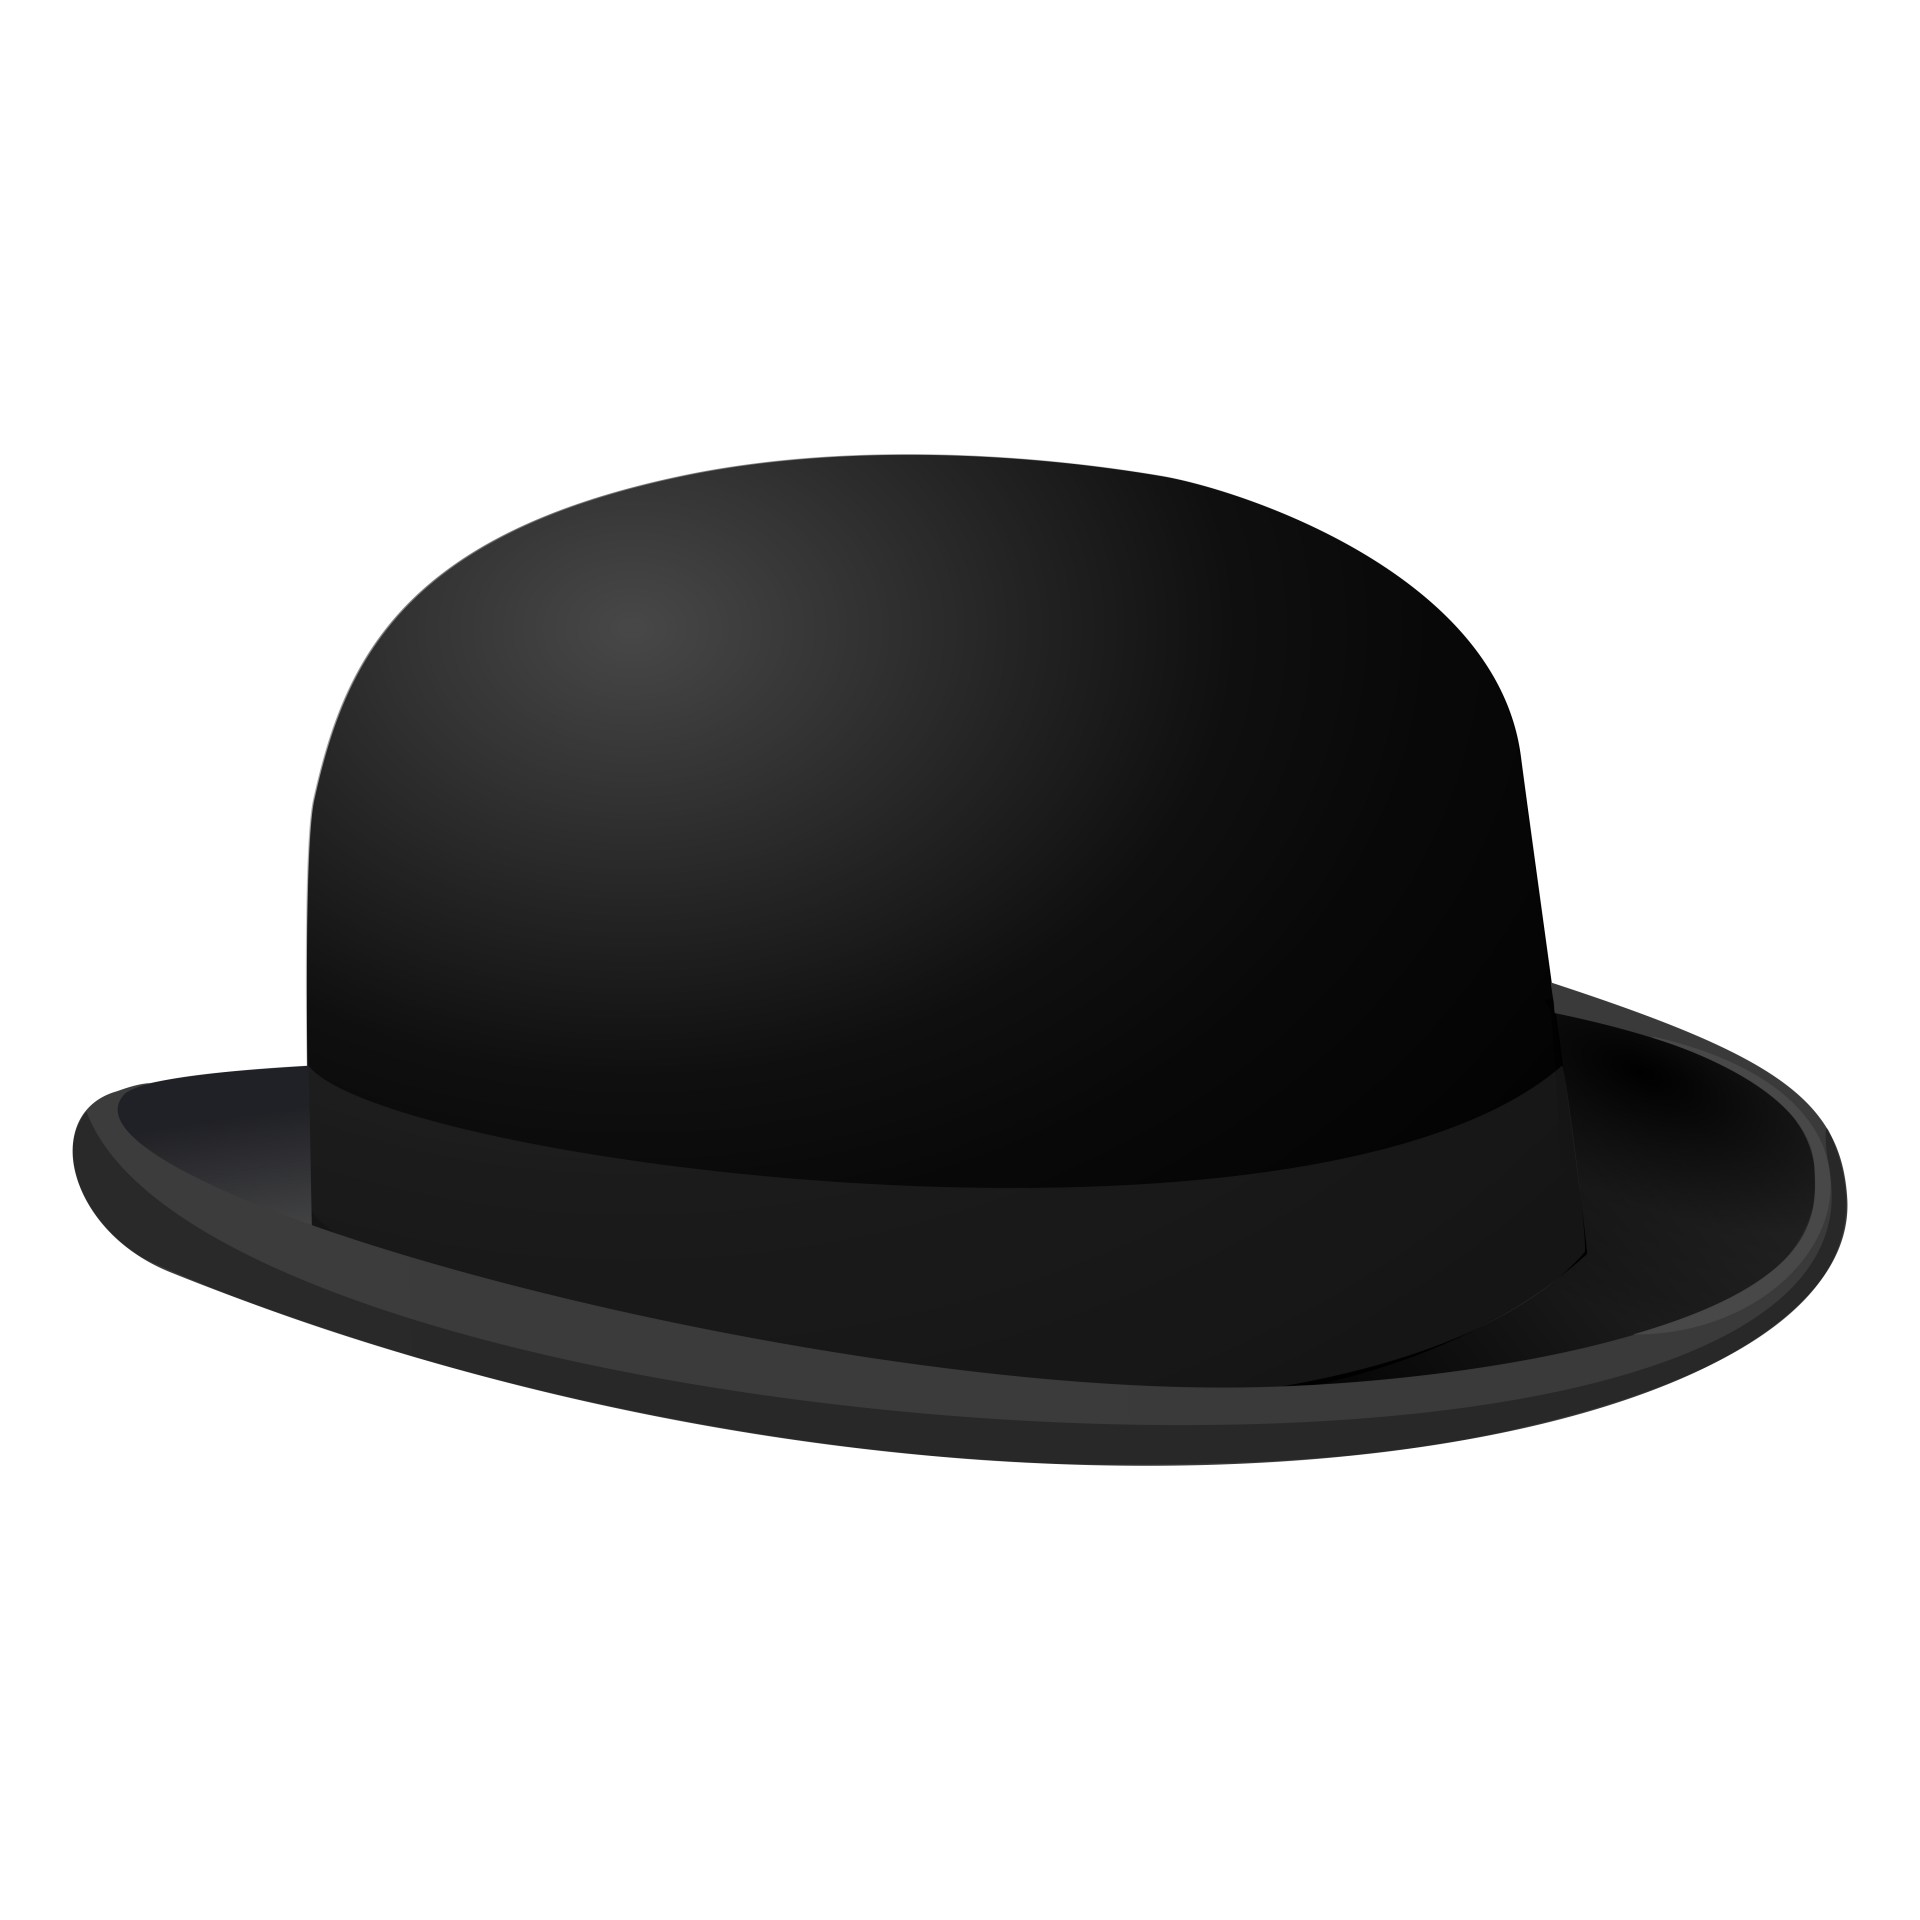 1920x1920 Silhouette Symbol Of Bowler Hat Free Stock Photo